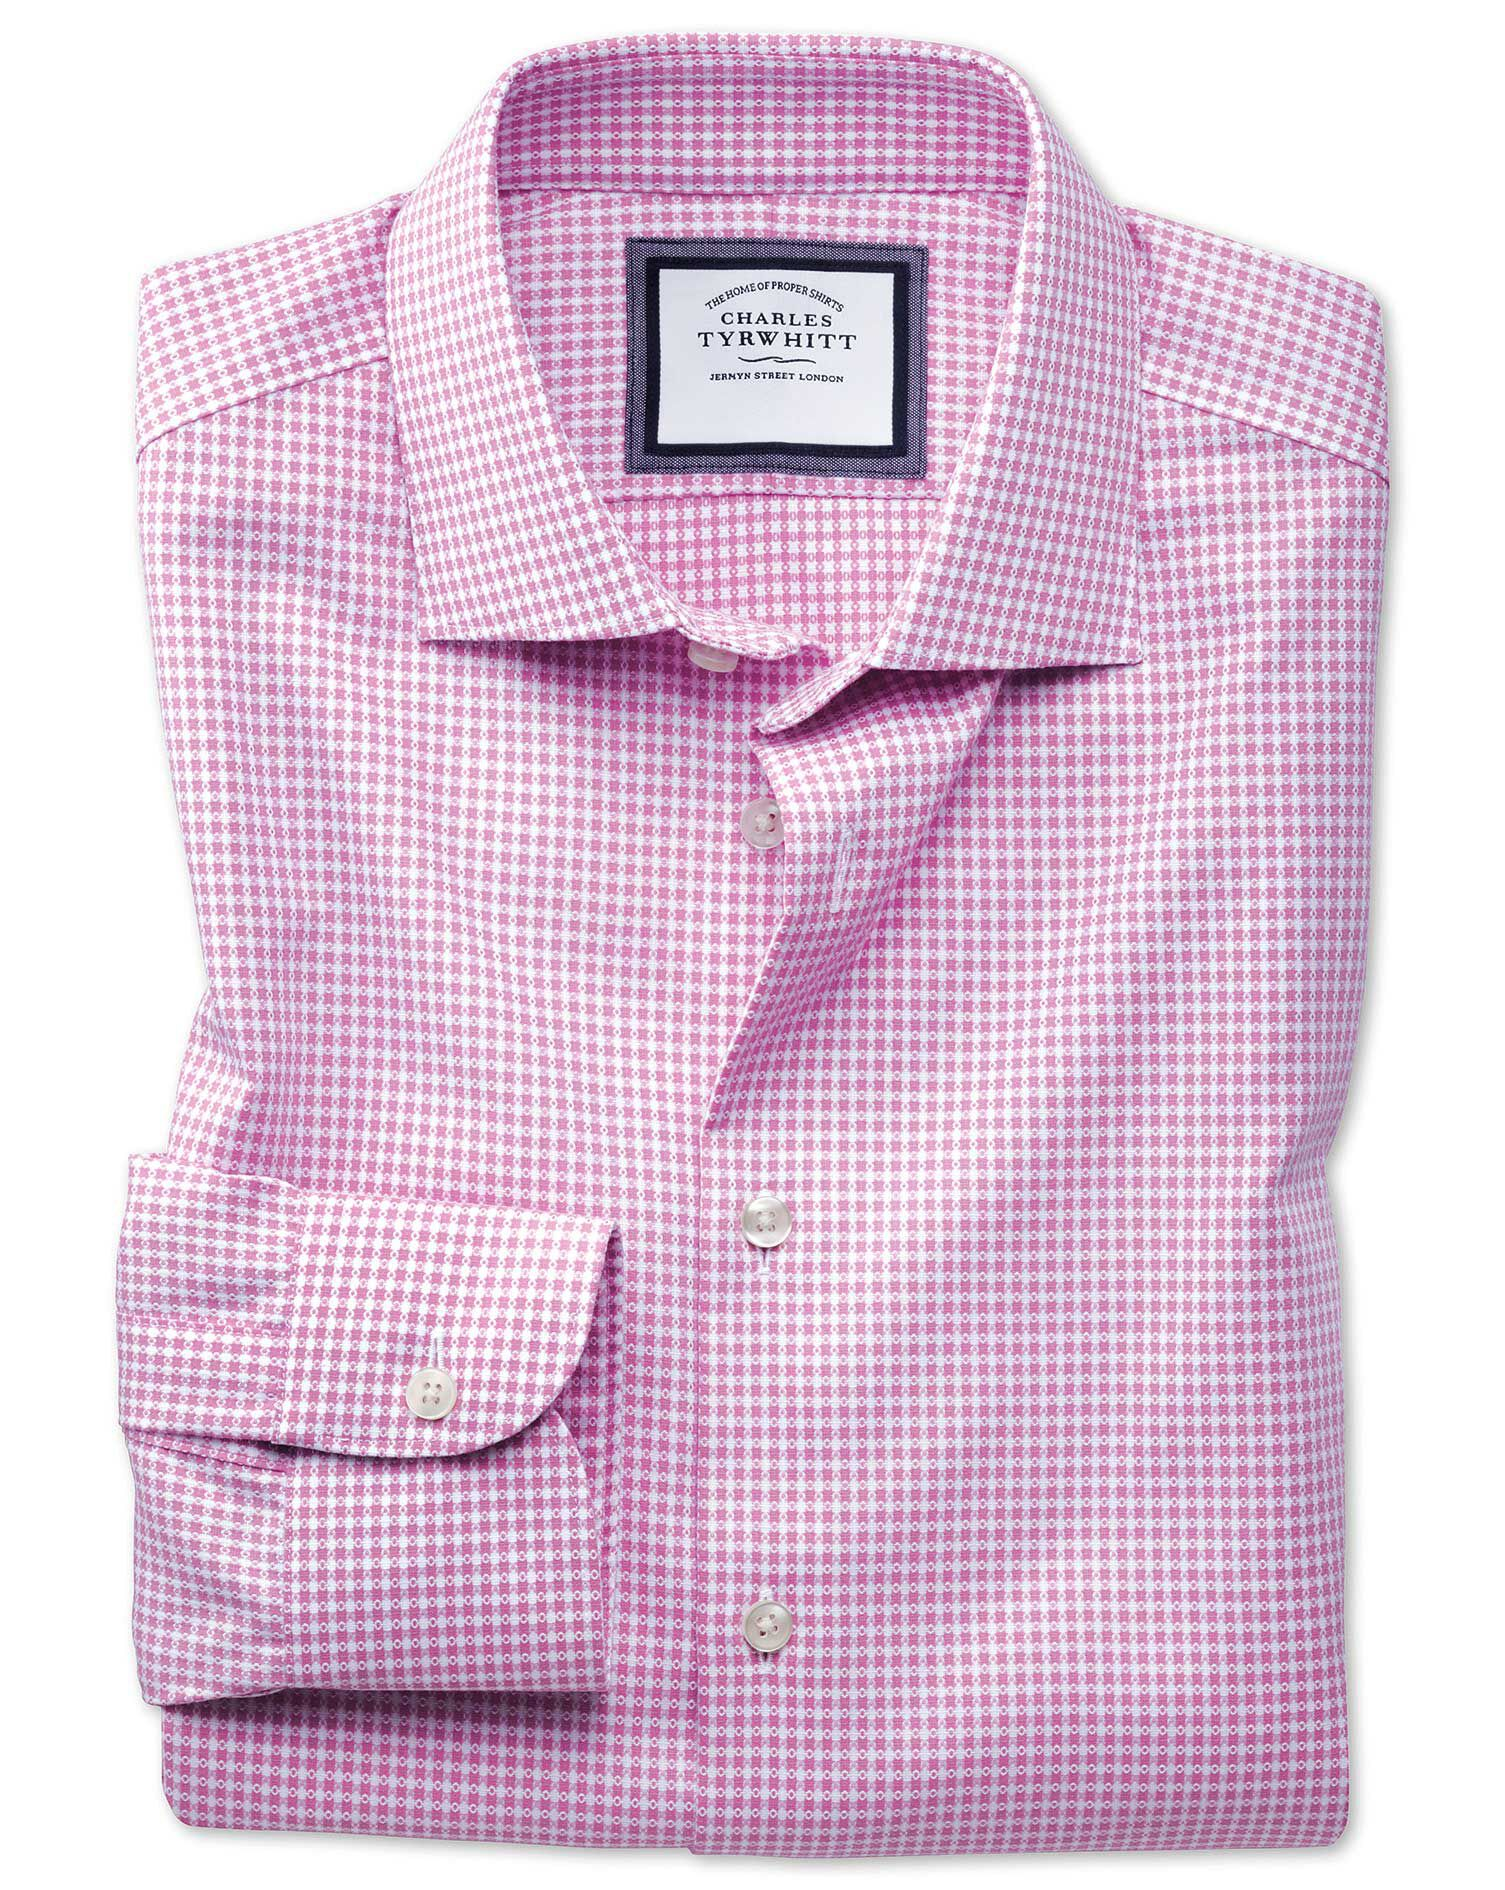 Slim Fit Business Casual Non-Iron Modern Textures Pink and White Cotton Formal Shirt Single Cuff Siz